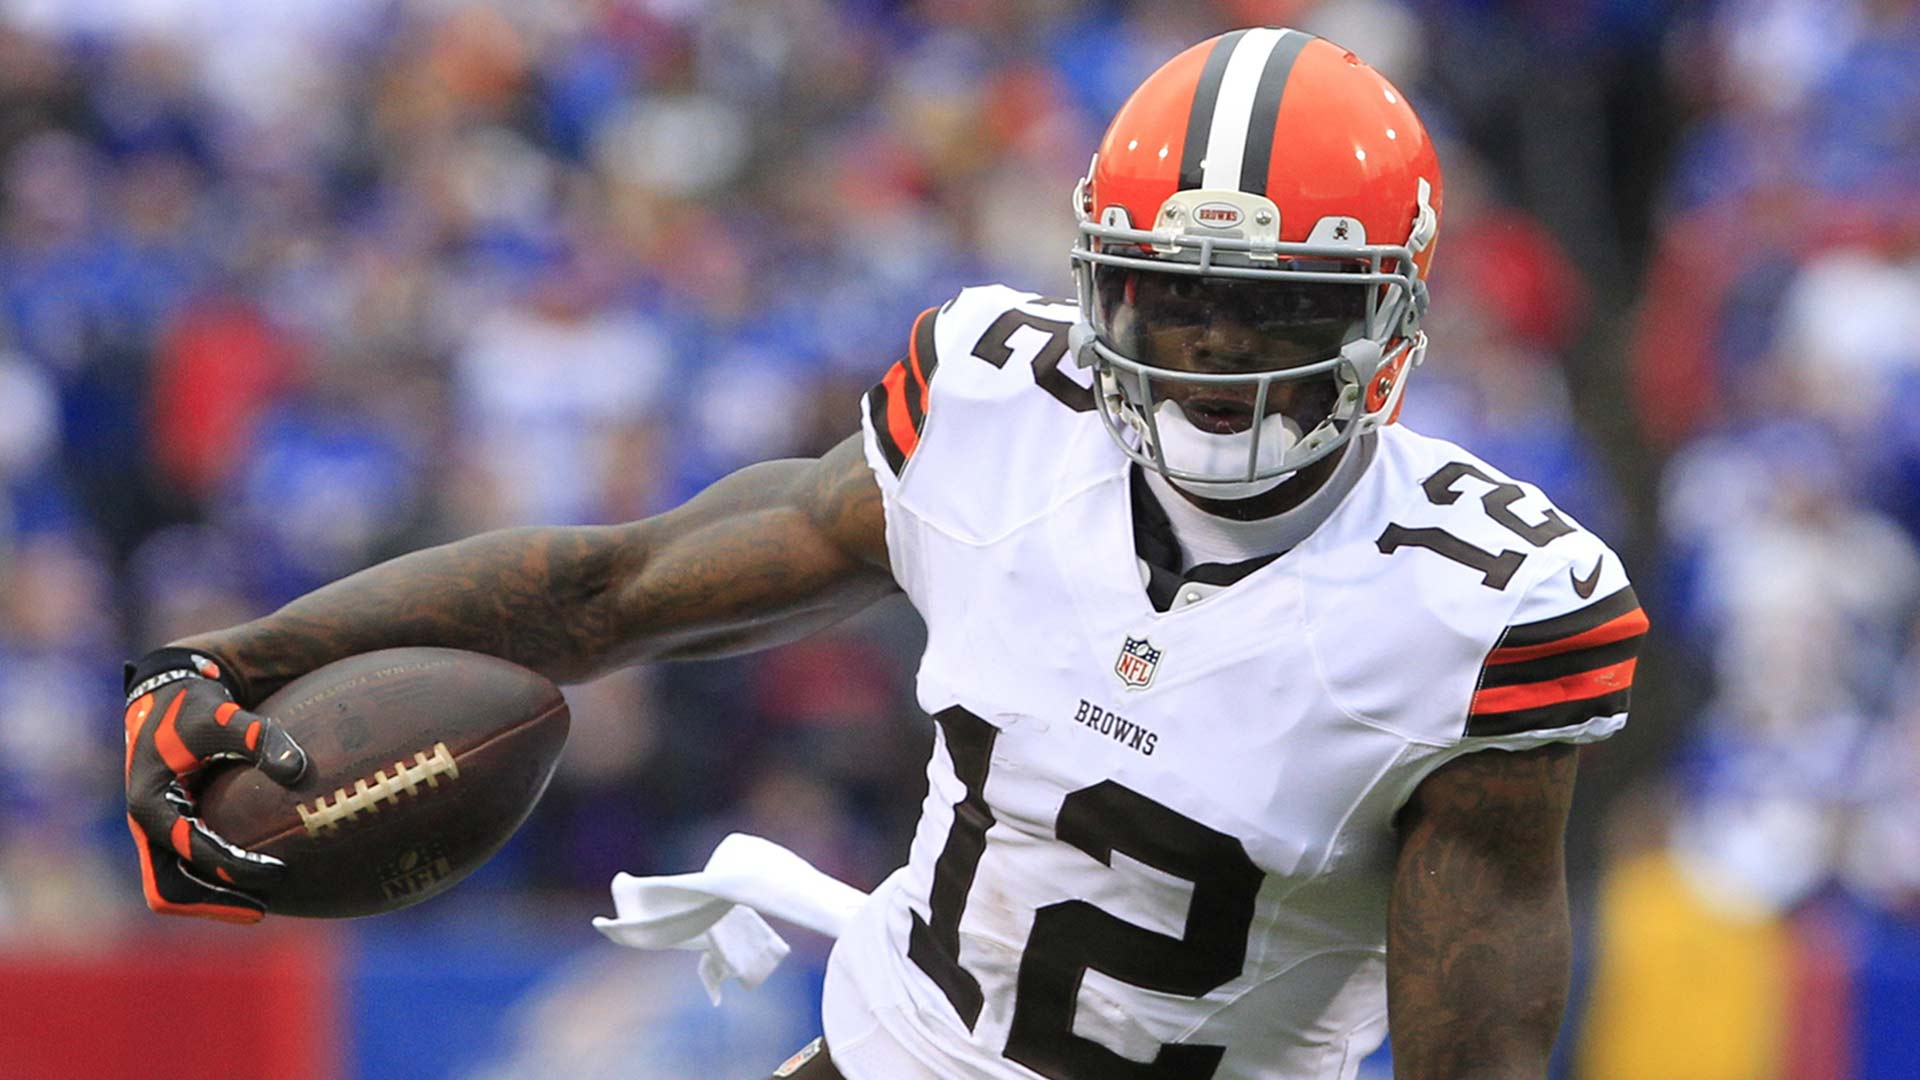 Cleveland Browns, 2012-2014<br> &raquo; Logged 161 receptions, 2,754 receiving yards and 14 receiving touchdowns<br> &raquo; Led the NFL in receiving yards in 2013 with 1,646 despite missing the first two games due to suspension<br> &raquo; Only player ever to record back-to-back games with 200-plus receiving yards (Recorded 498 receiving yards in Week 12 and Week 13 of the 2013 season)<br> &raquo; Gordon's latest bid for reinstatement to the NFL was denied don May 11, 2017